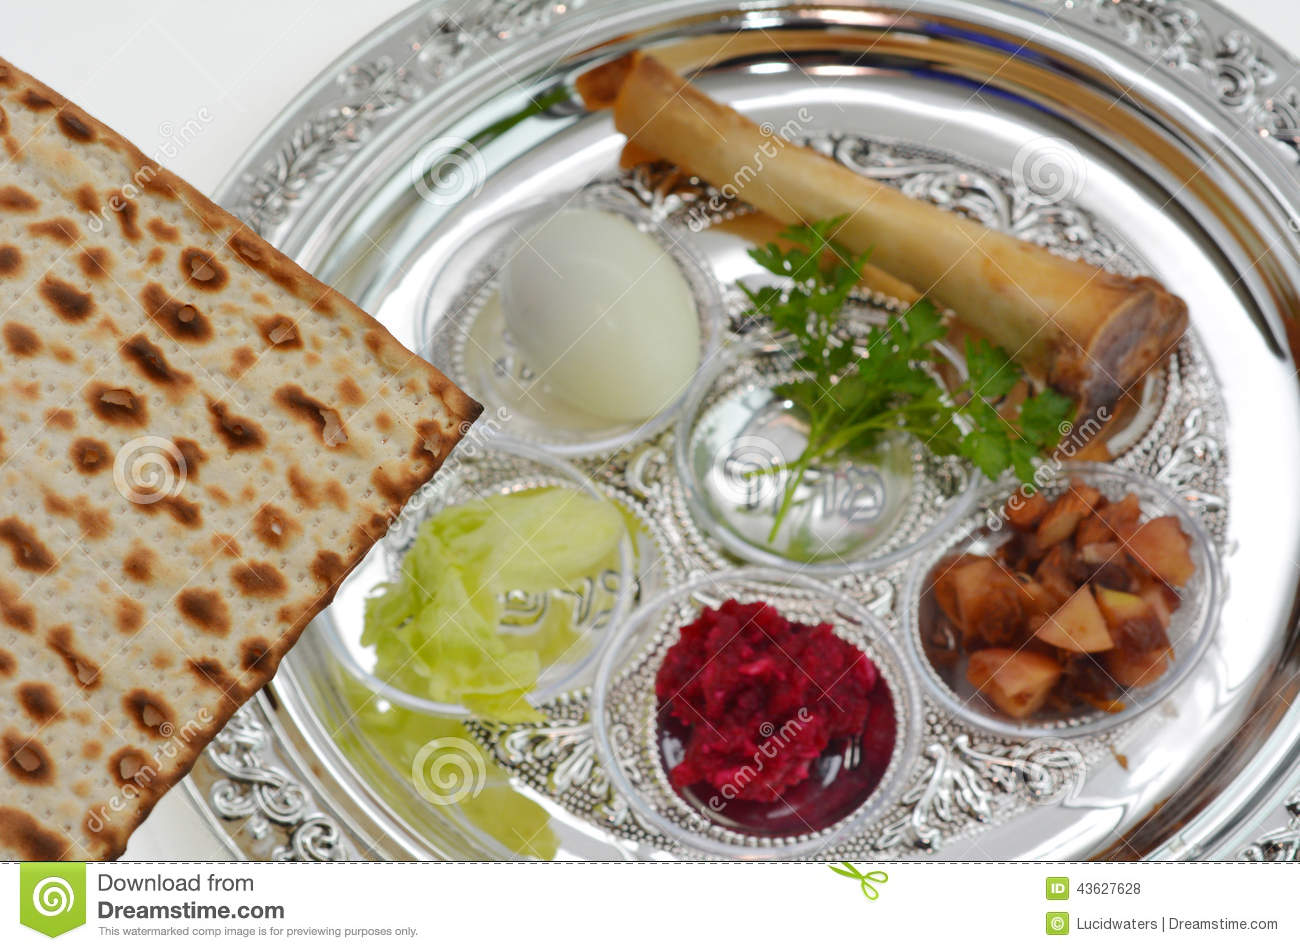 jewish holiday passover and its symbolic foods and customs Passover is an important jewish holiday that commemorates the  there are  many traditions and symbolic foods tied to the weeklong holiday.